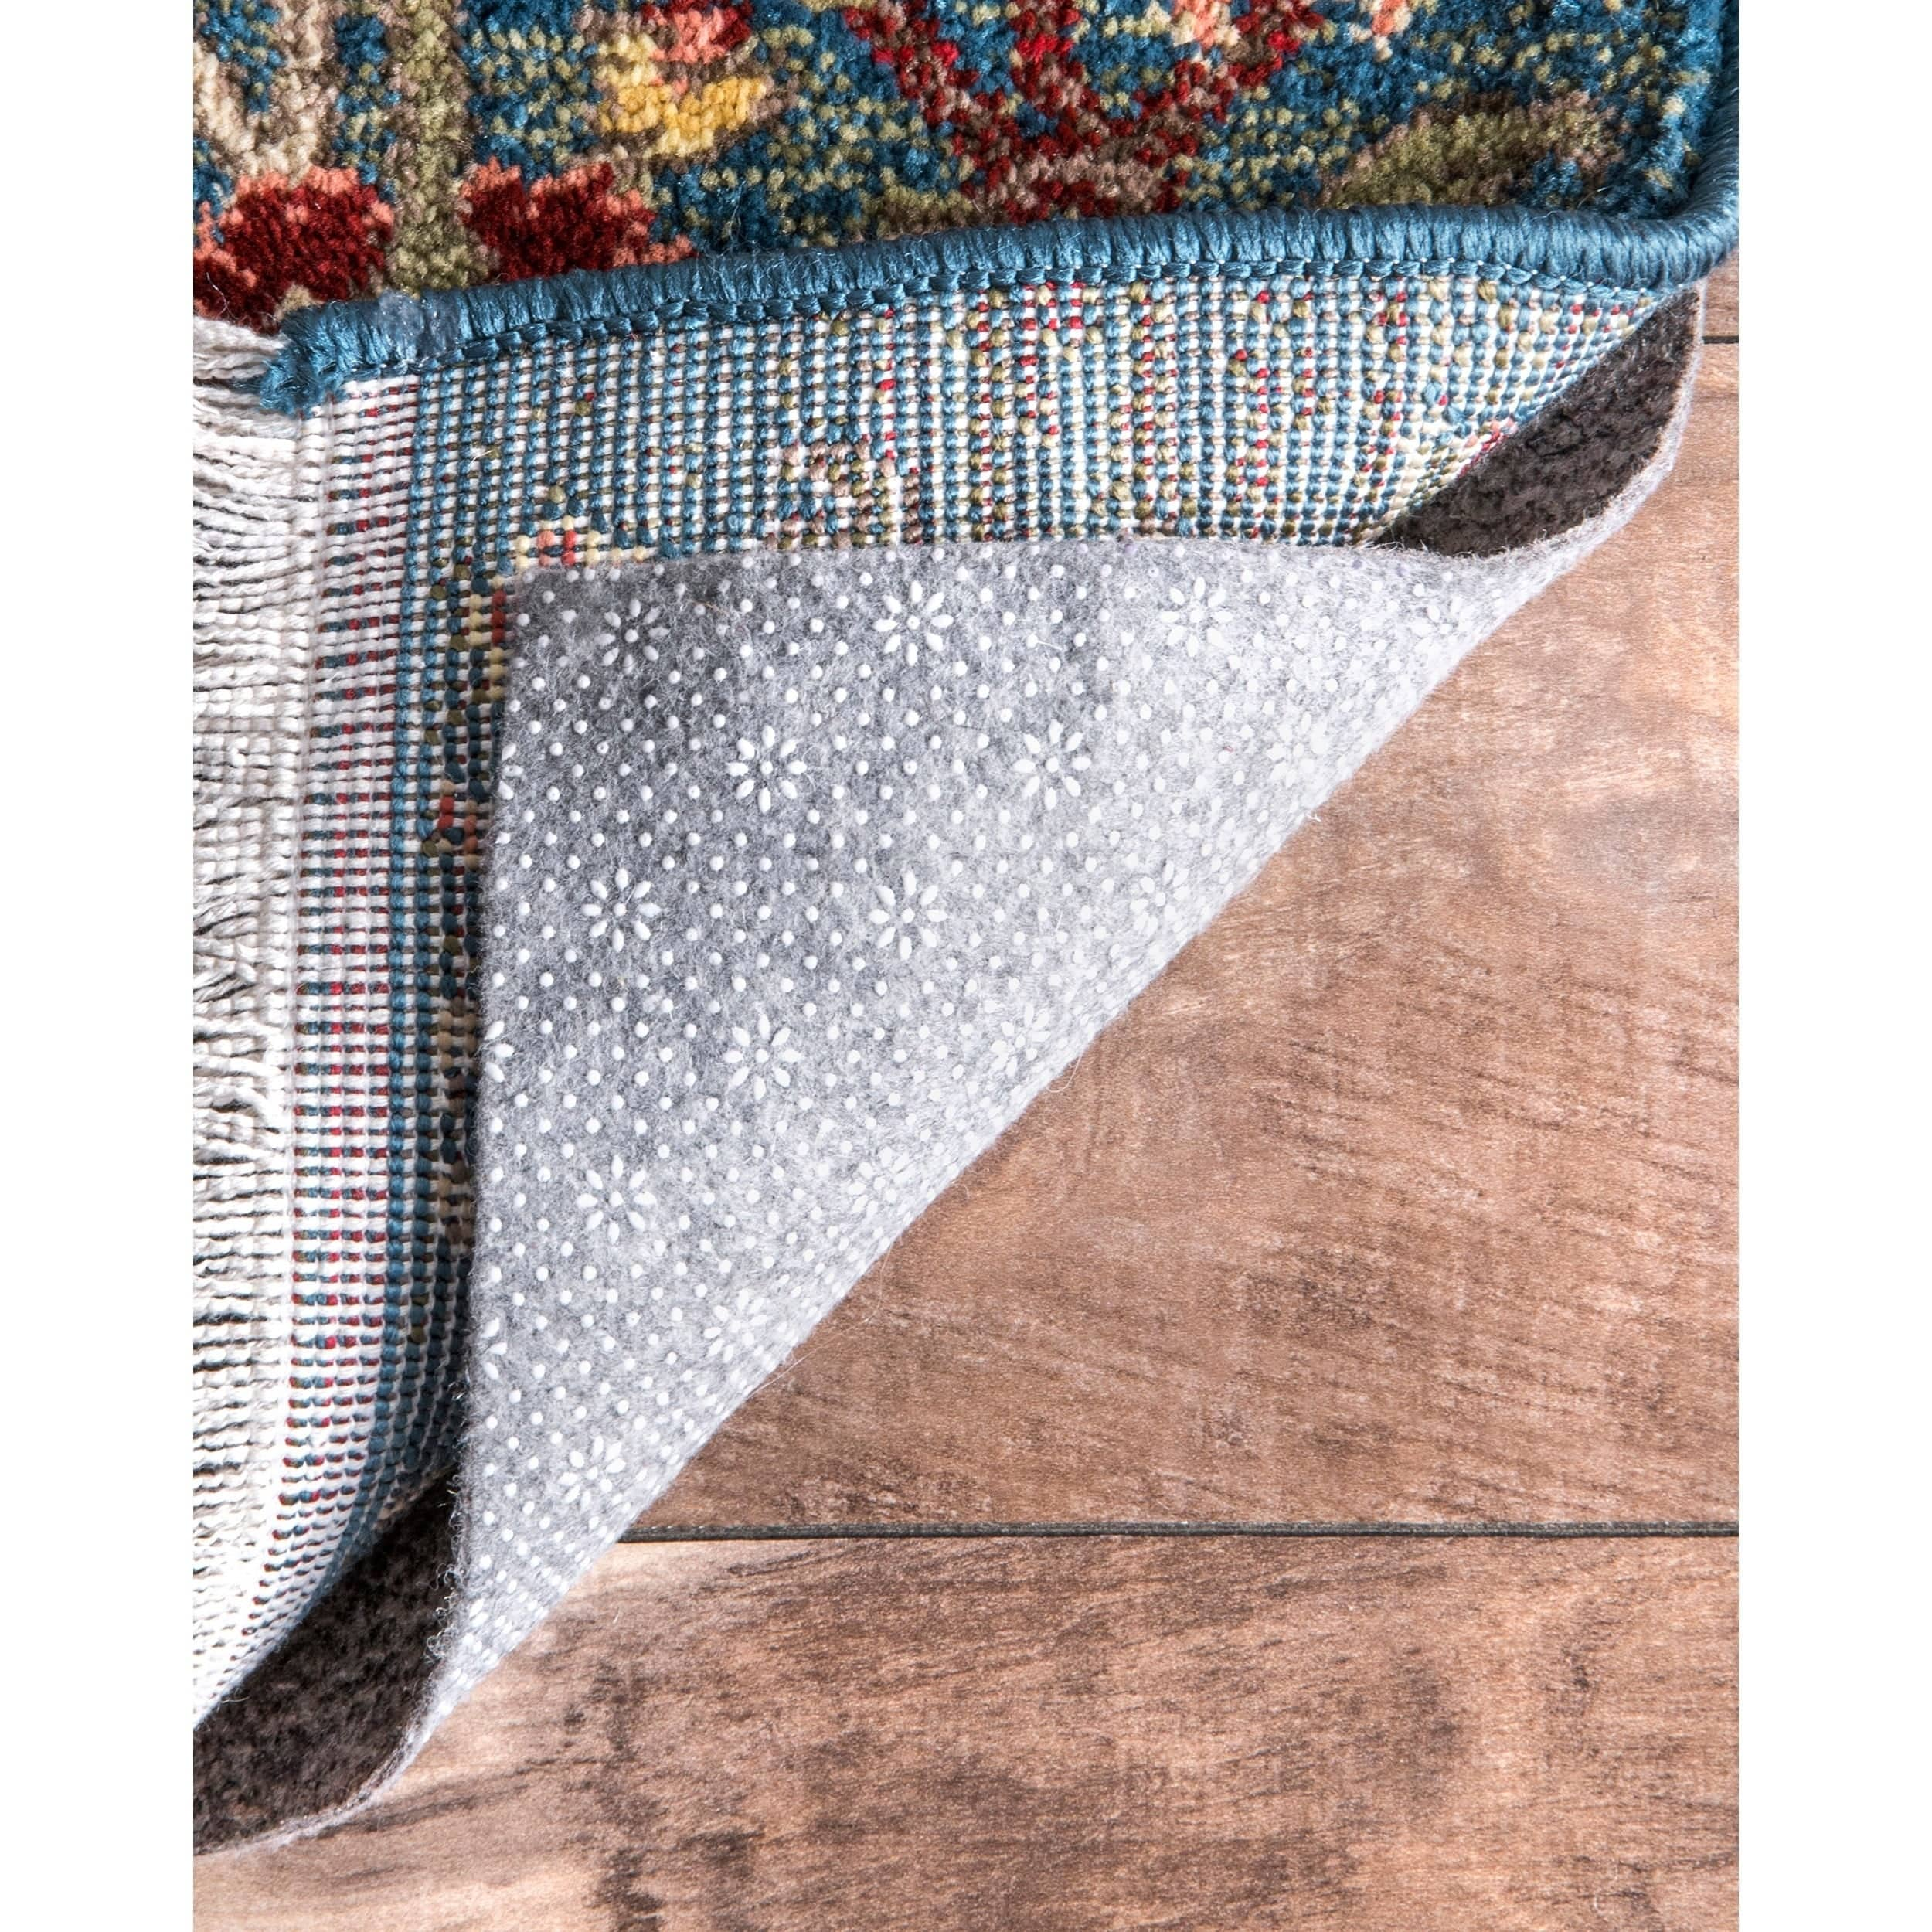 Eco Stay Rug Pad: Buy Rug Pads Online At Overstock.com